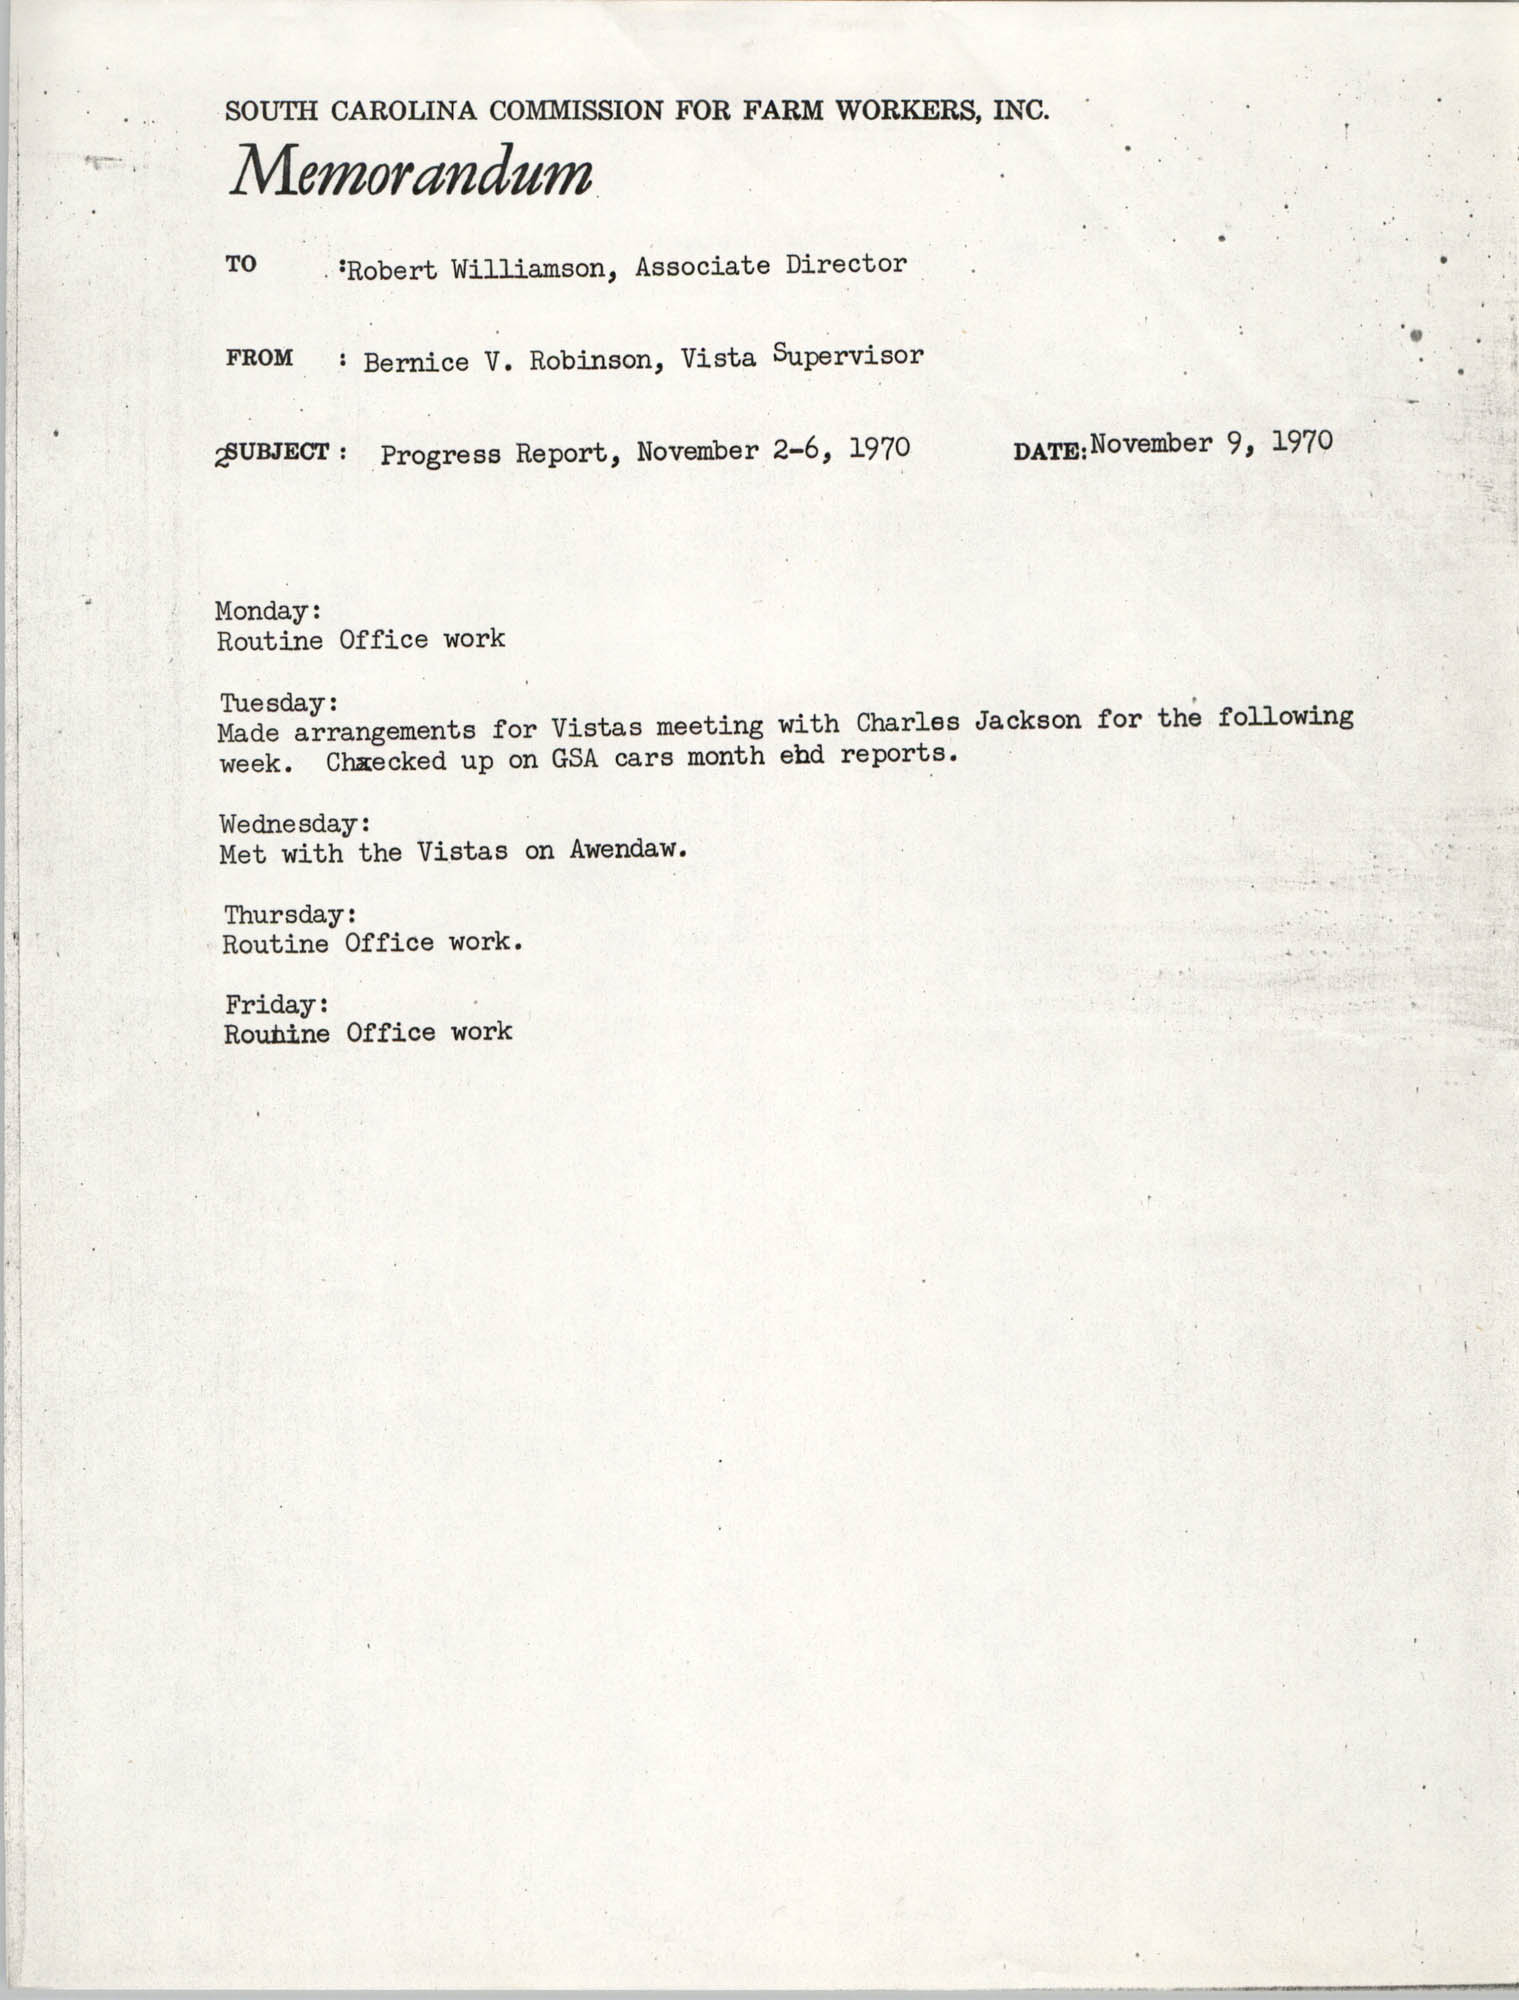 Memorandum from Bernice V. Robinson to Robert Williamson, November 9, 1970